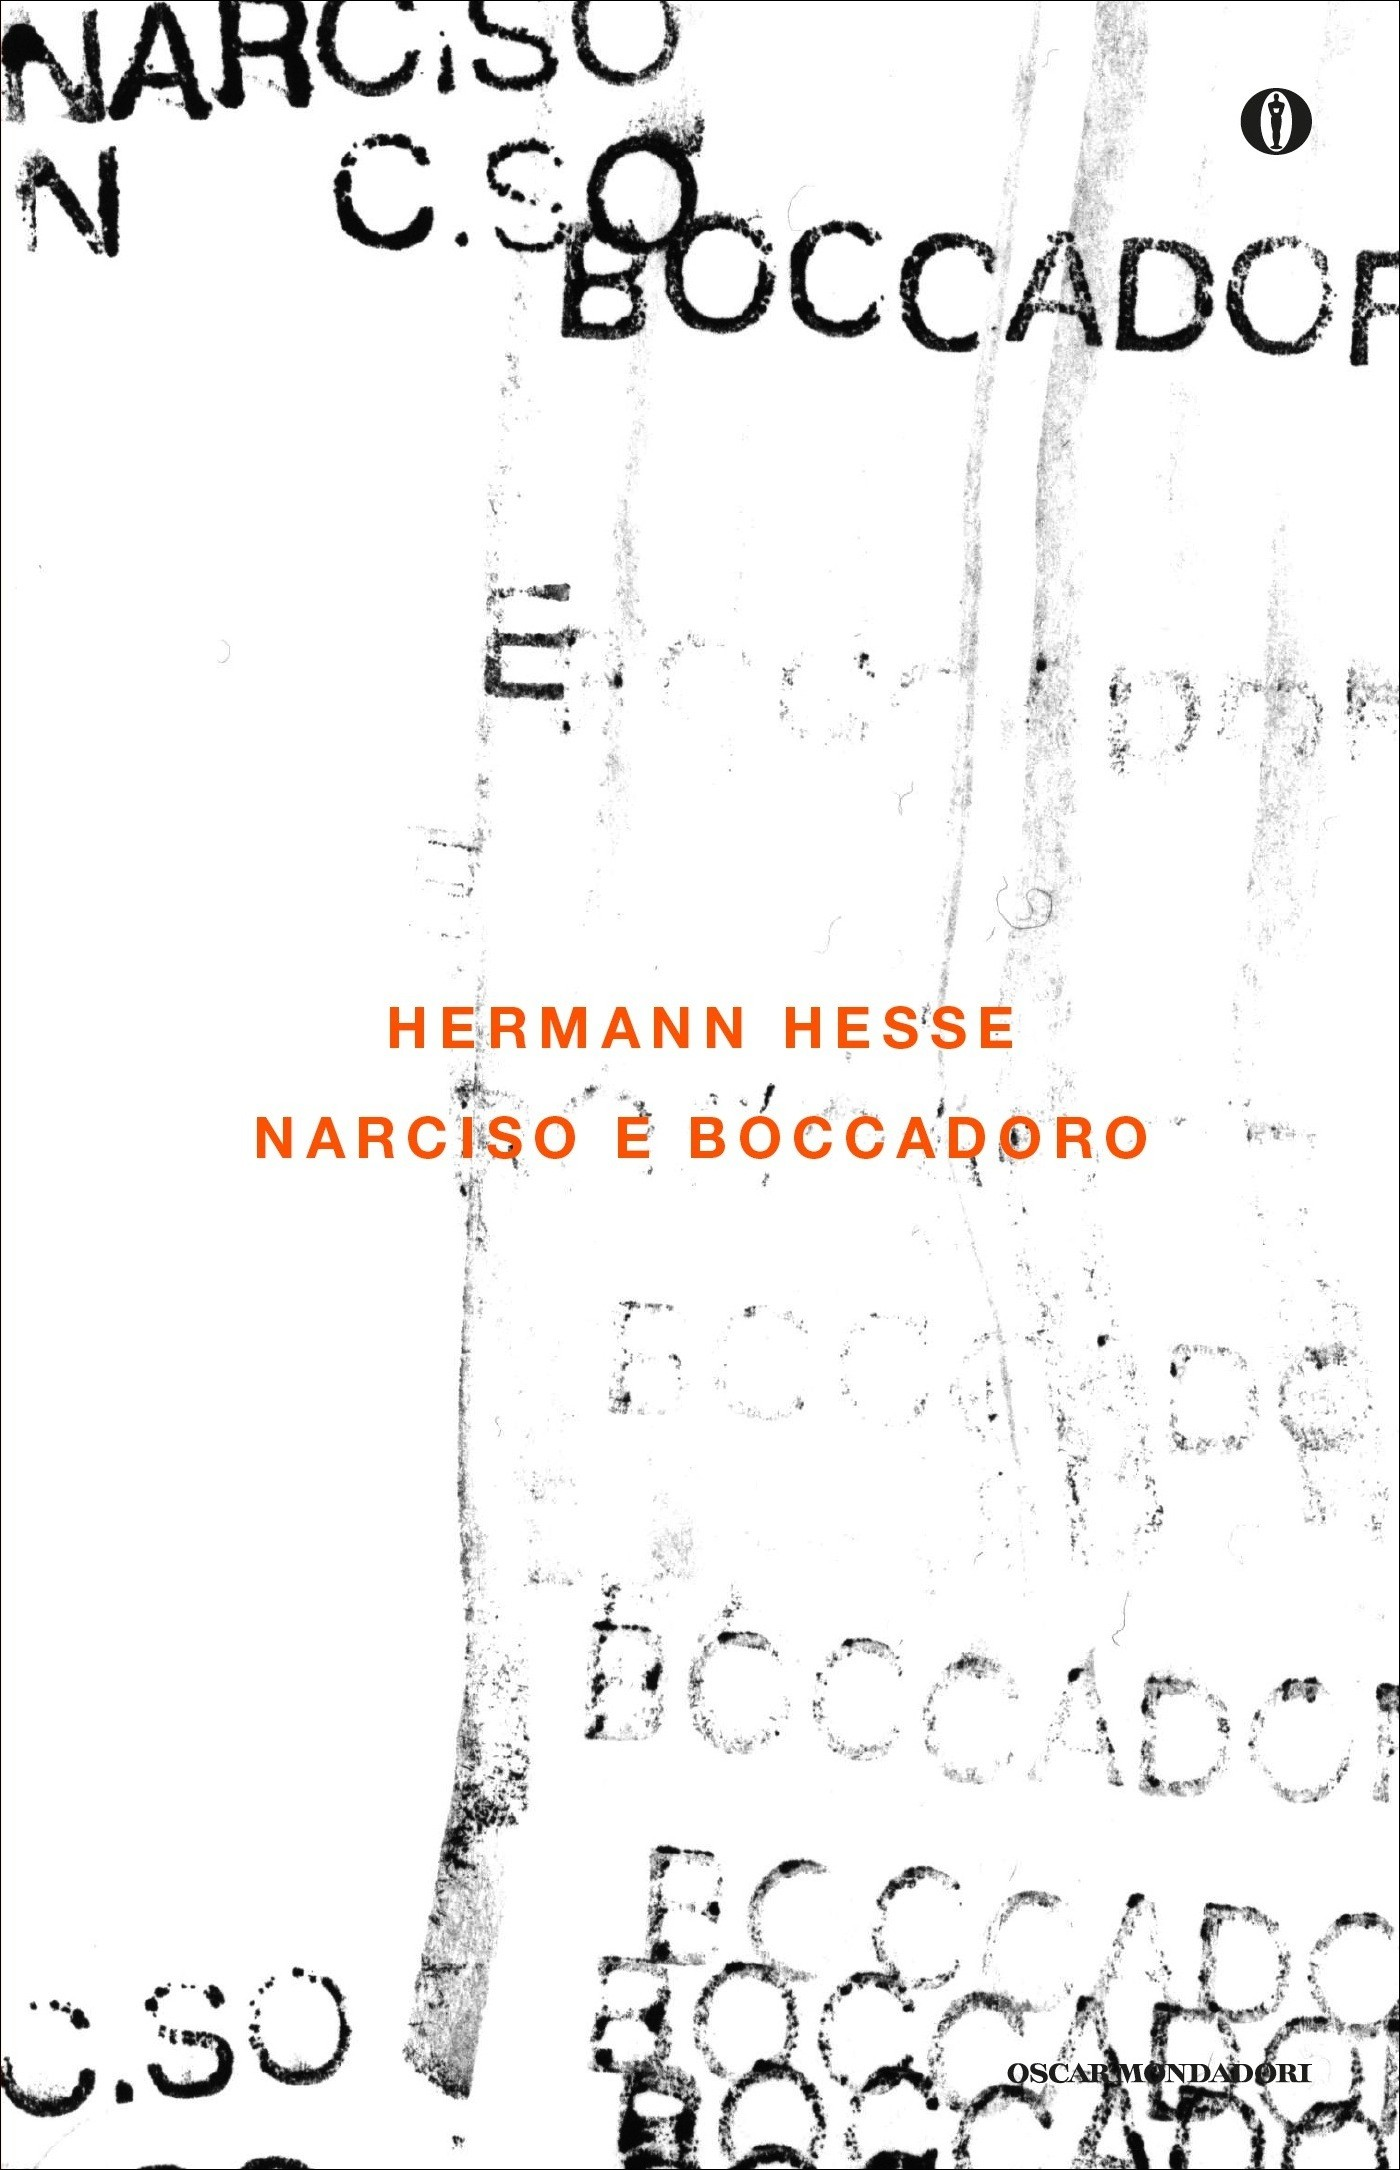 http://alessandria.bookrepublic.it/api/books/9788852016653/cover